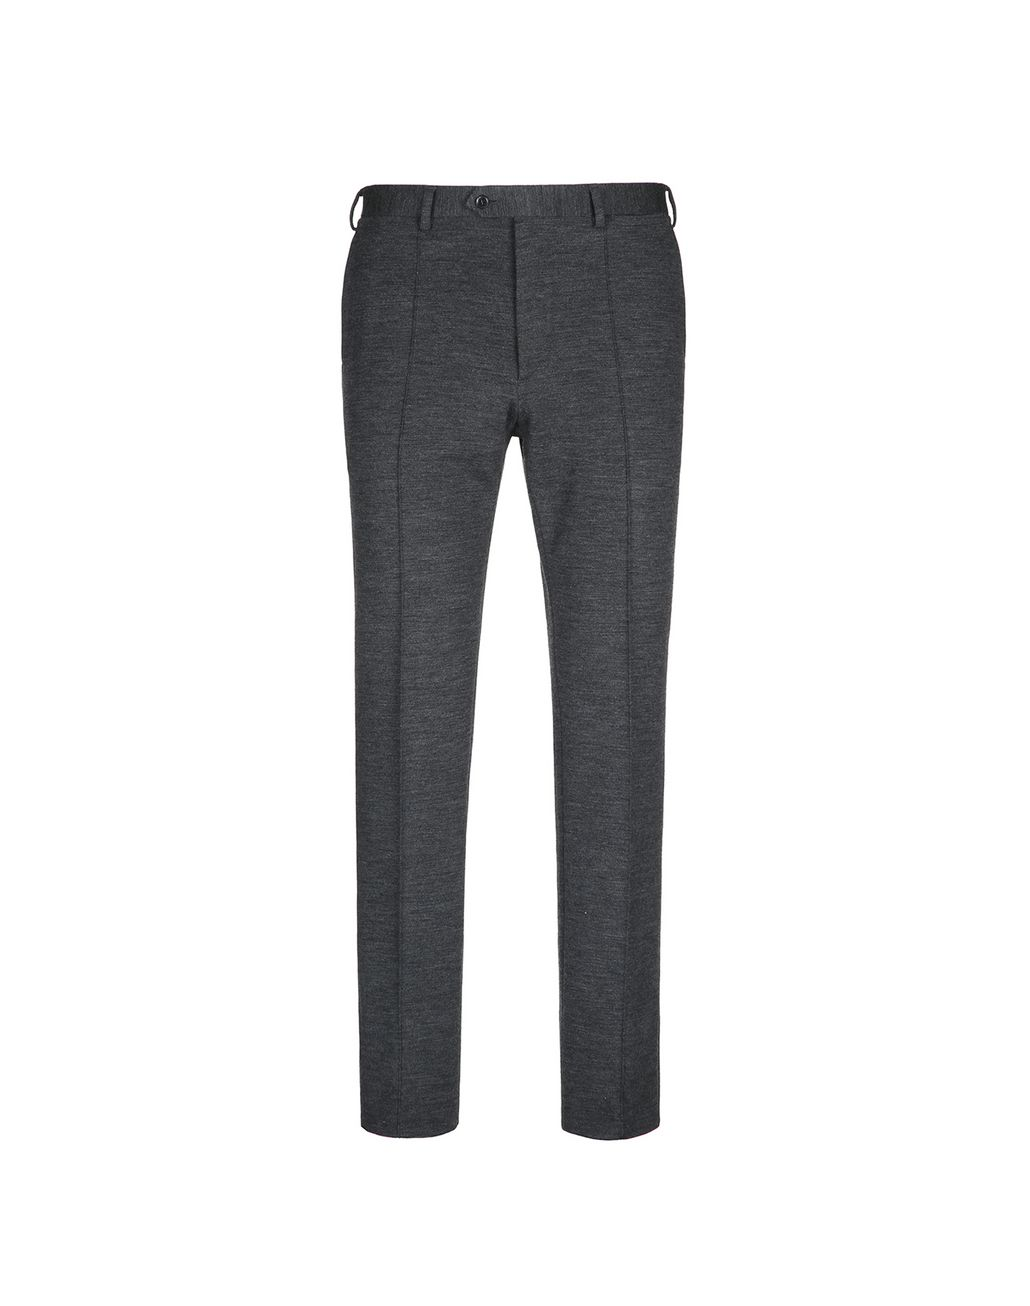 BRIONI Antrachite Grey Jersey Trousers Trousers Man f